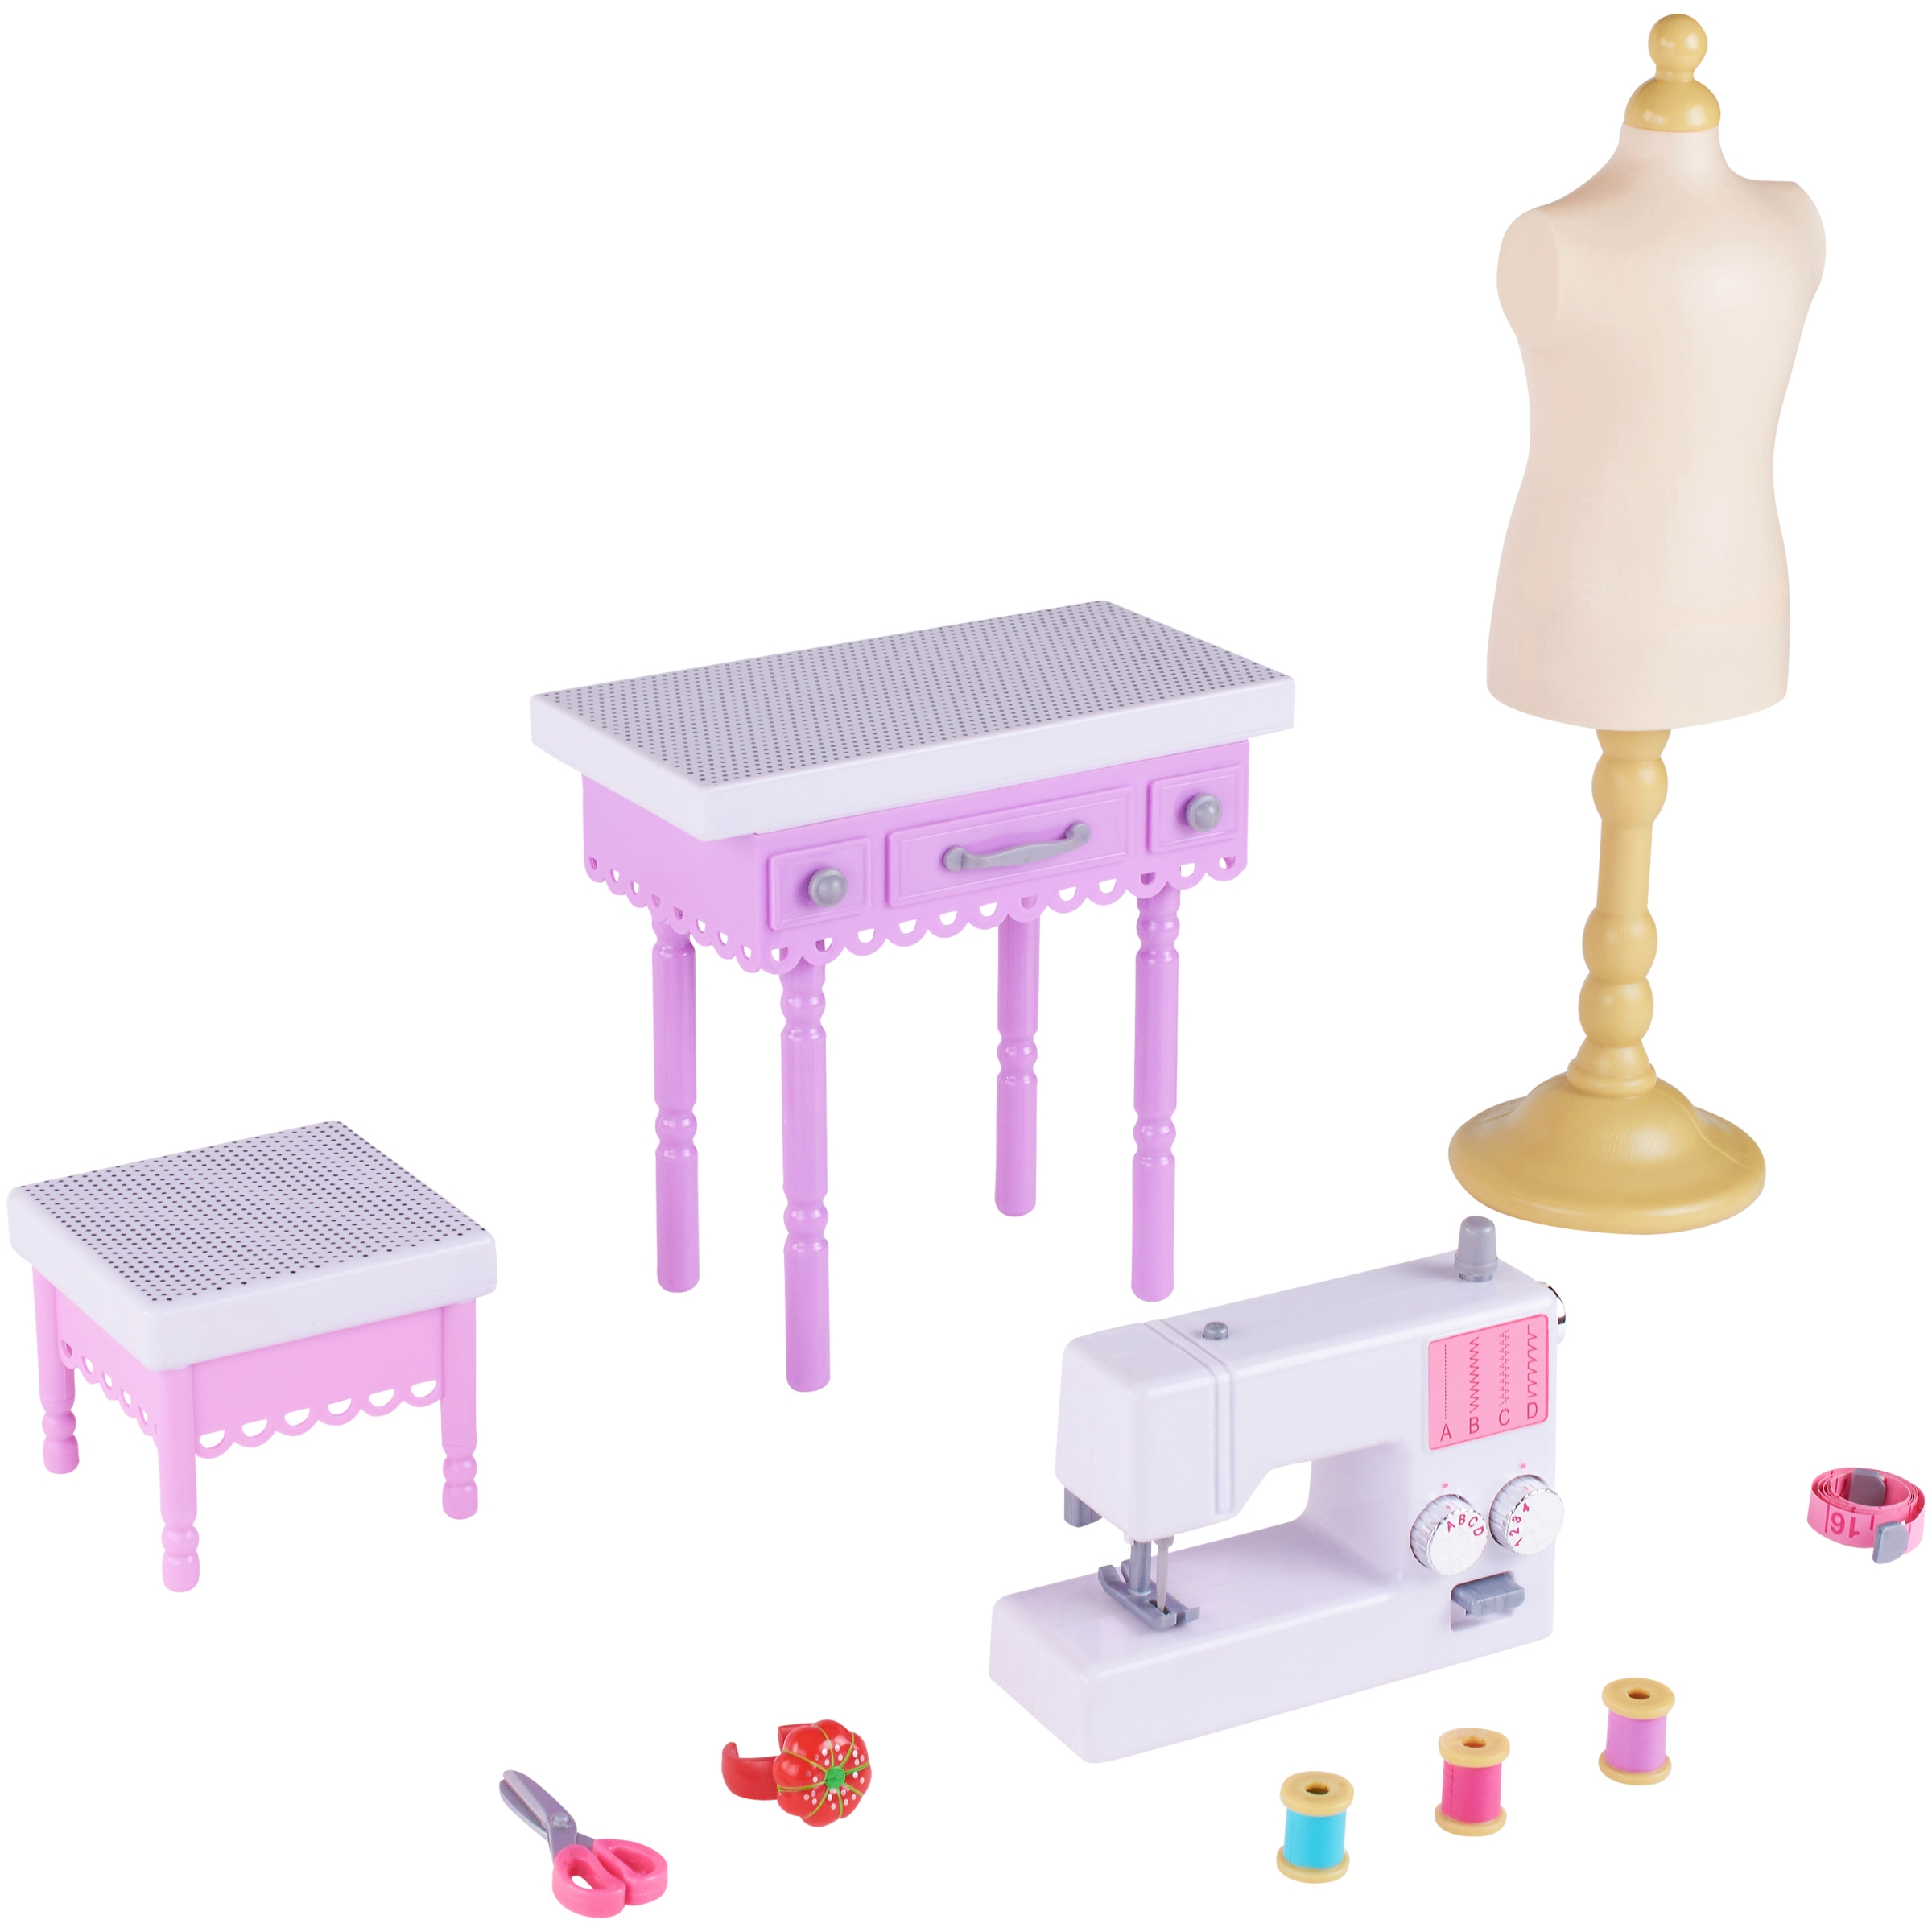 My life as 11-piece fashion designer play set, designed for ages 5 and up